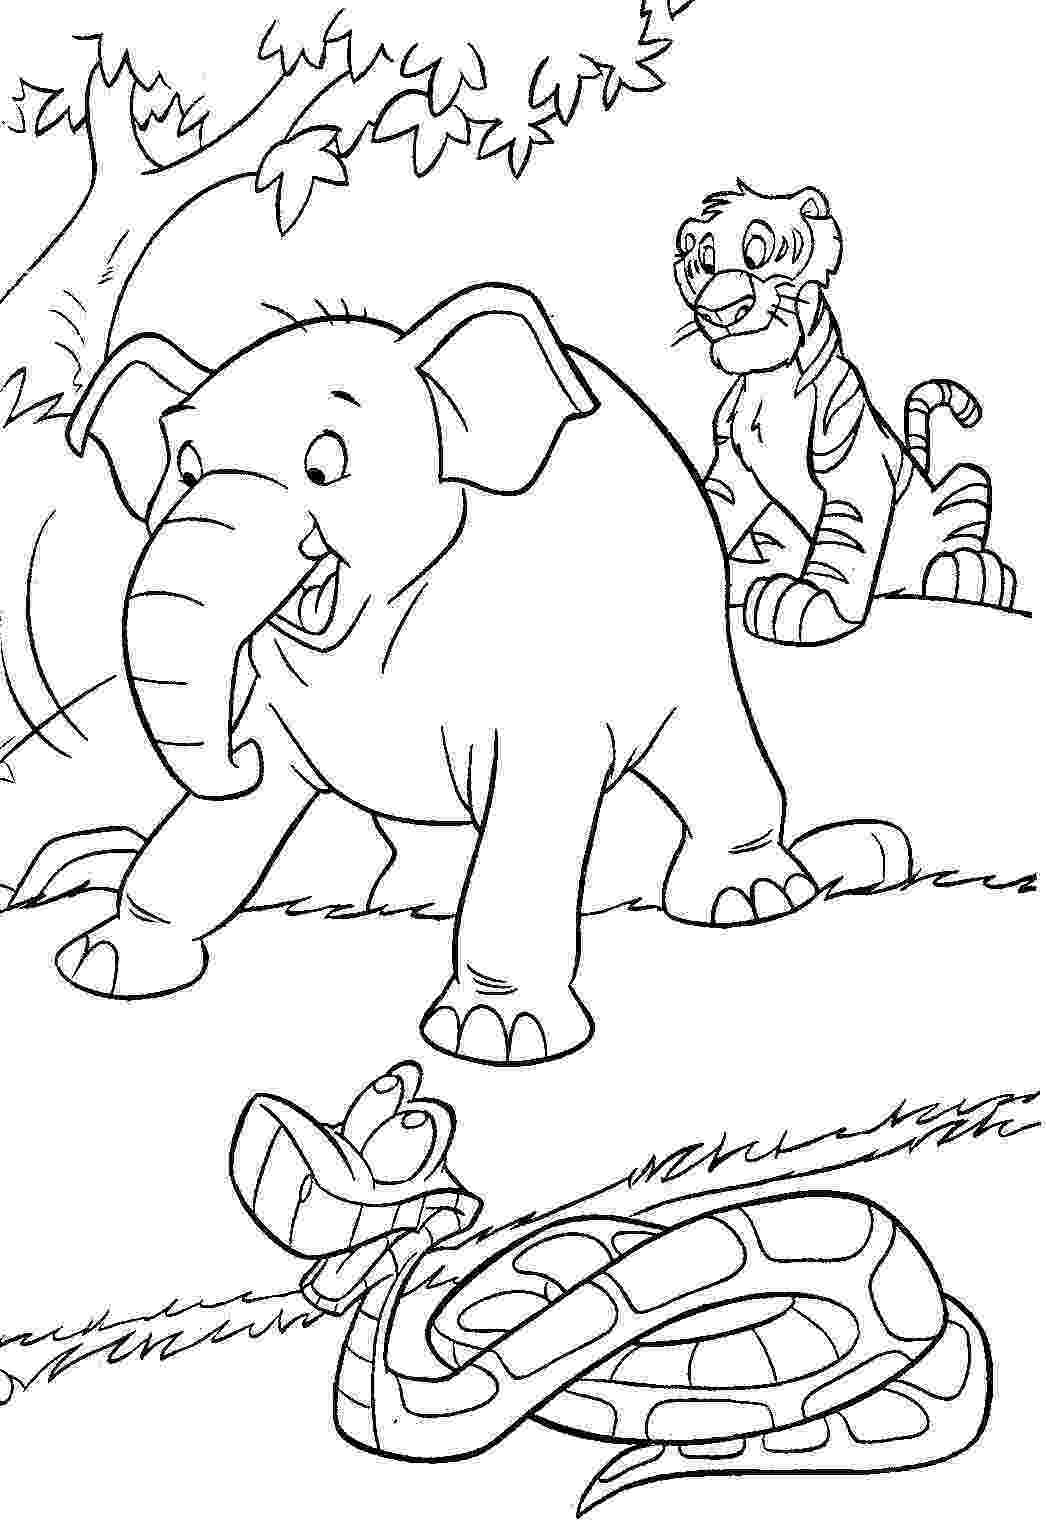 jungle animals coloring pages for toddlers jungle coloring pages best coloring pages for kids jungle for pages animals coloring toddlers